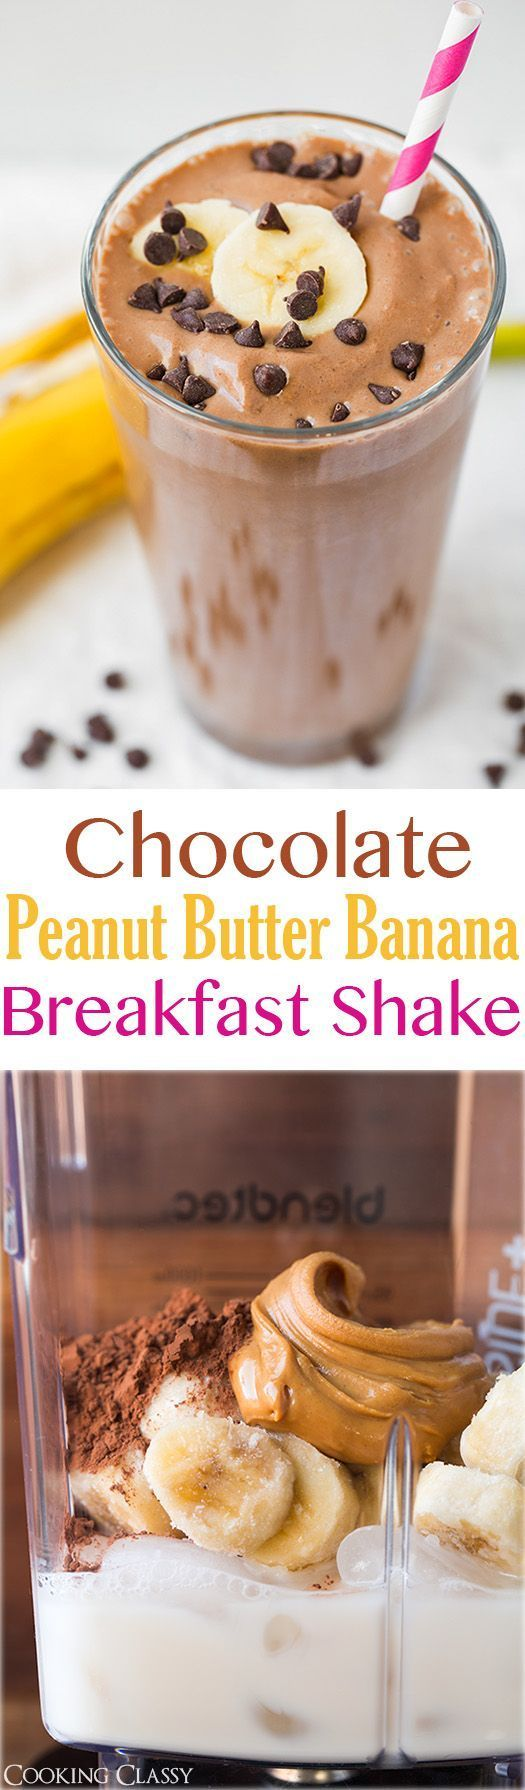 Best 25+ Healthy chocolate smoothie ideas on Pinterest | Chocolate ...